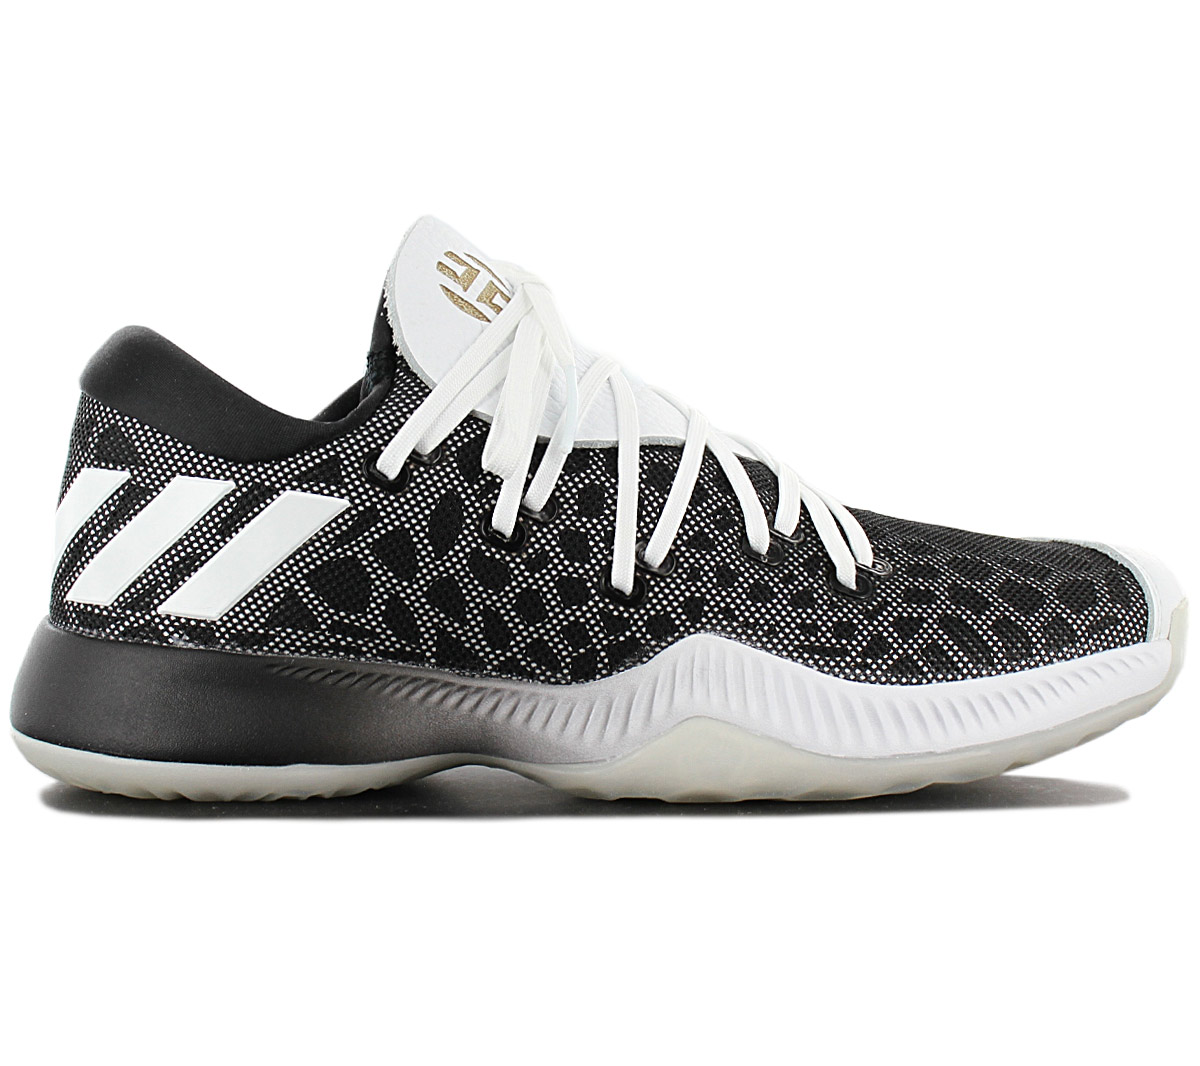 Details about Adidas James Harden BE Mens Basketball Shoes CG4196 Shoes Sneakers Trainers show original title